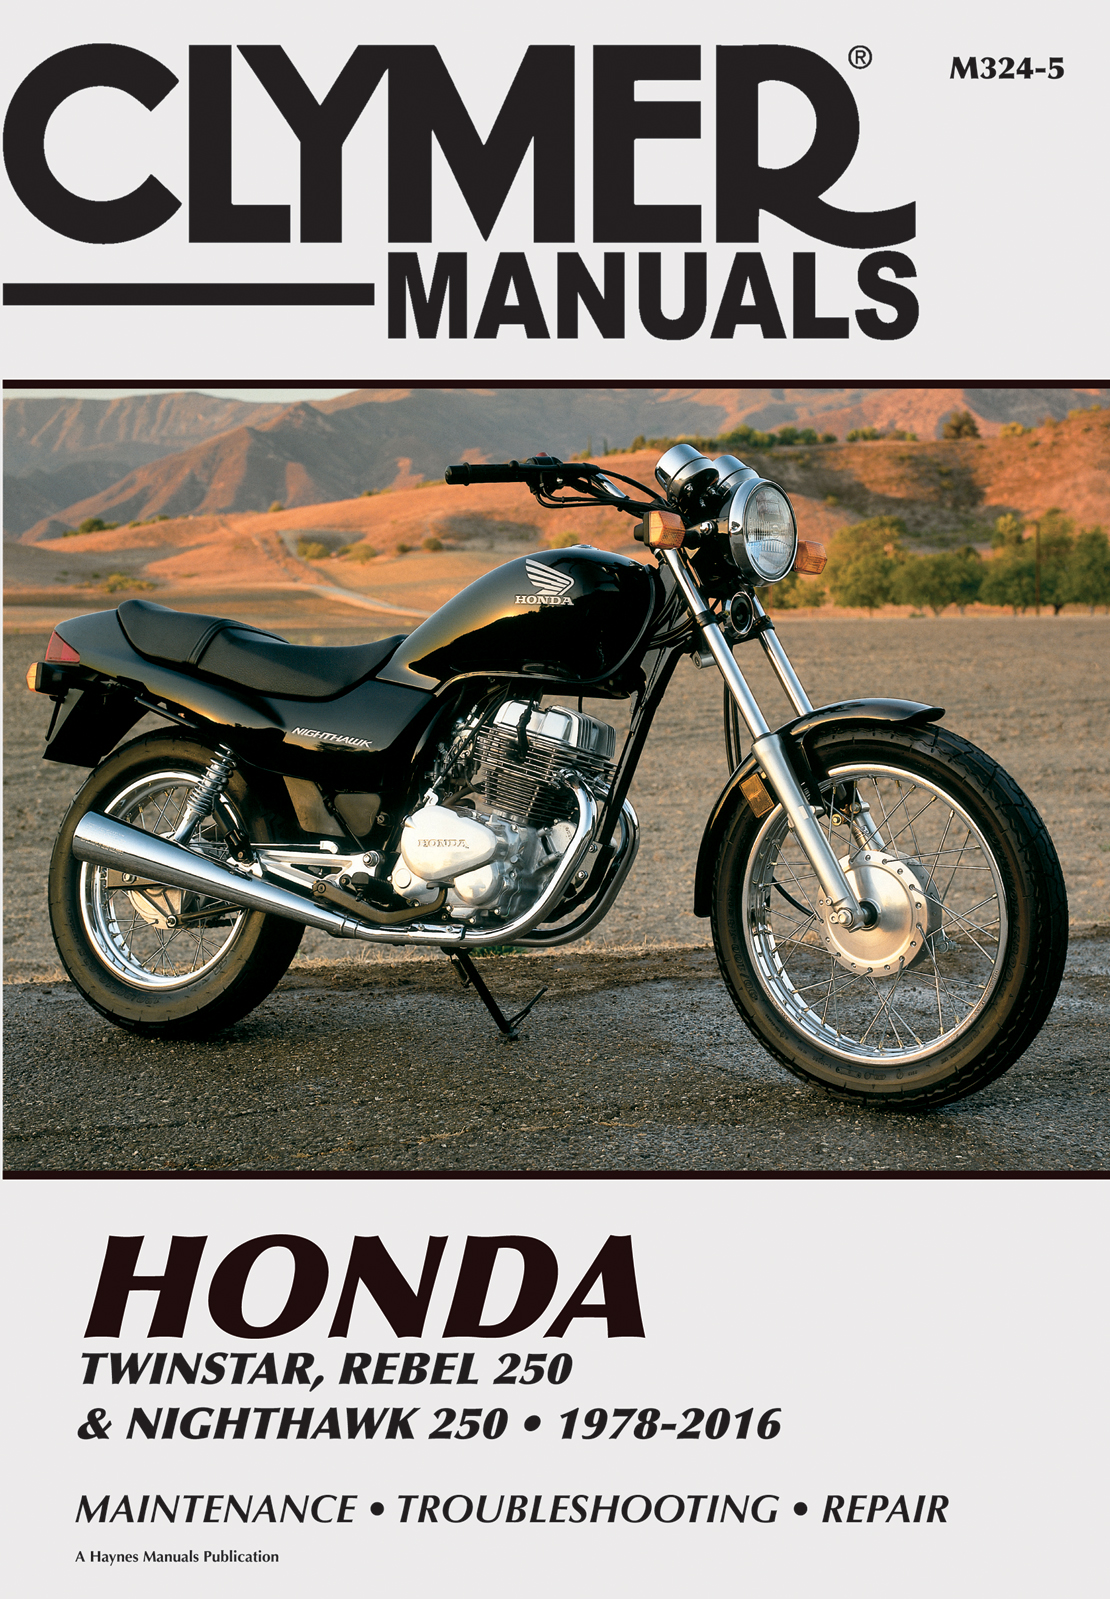 Honda_Twinstar_&_Nighthawk_250_Motorcycle_19782016_Service_Repair_Manual